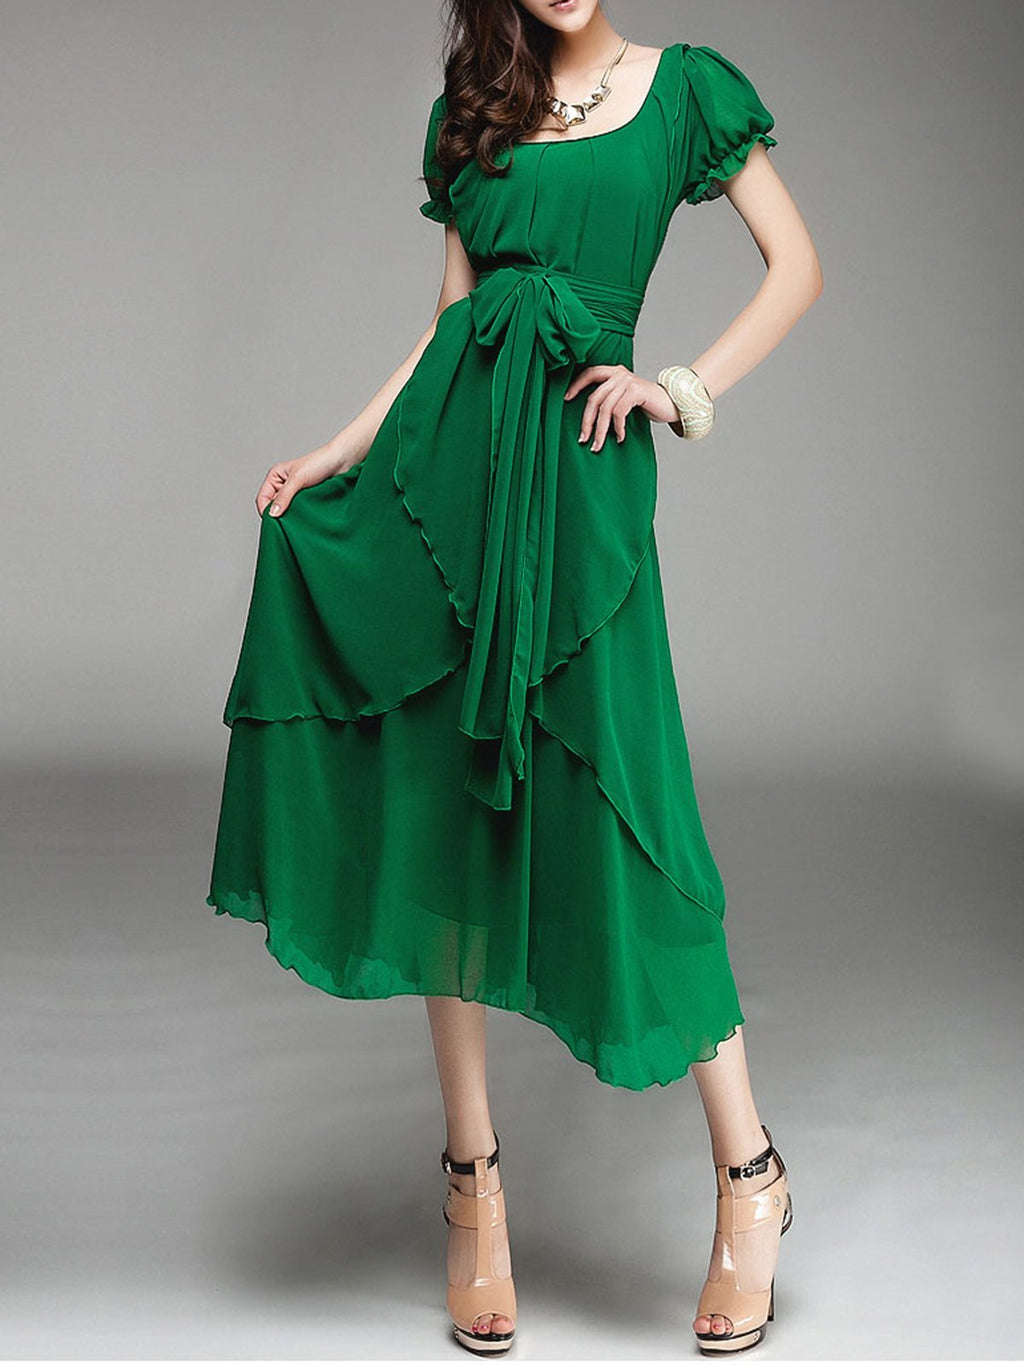 Green Asymmetric Chiffon Resort Holiday Belted Dress